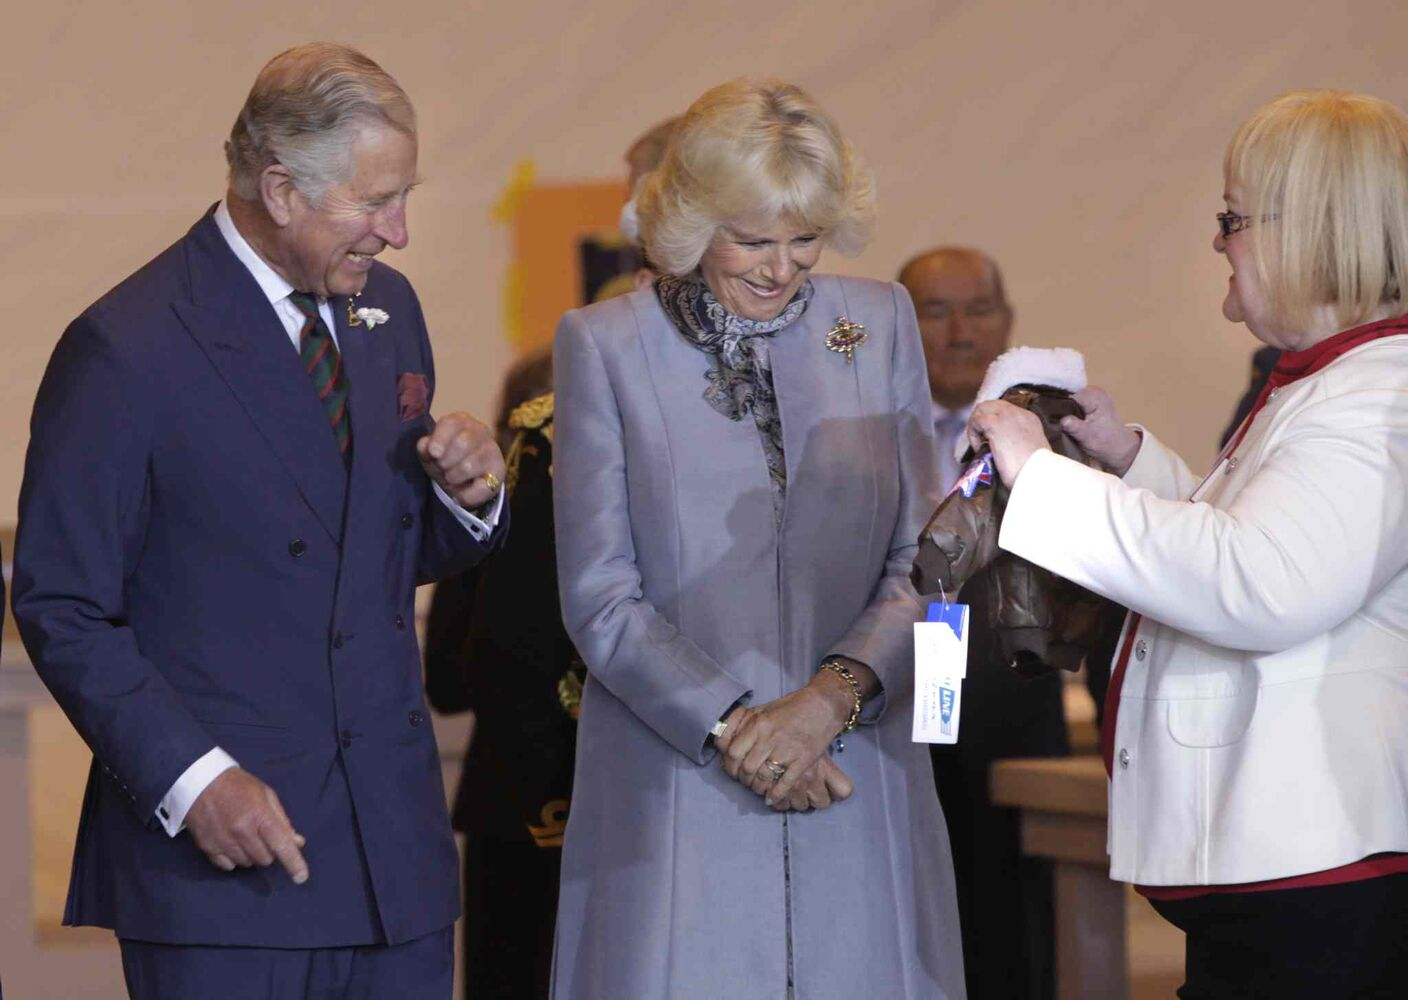 At right, Barb Bowen presents Prince Charles and Camilla, Duchess of Cornwall a flight jacket for Prince George at the ceremony in the Stevenson Hangar Wednesday morning.